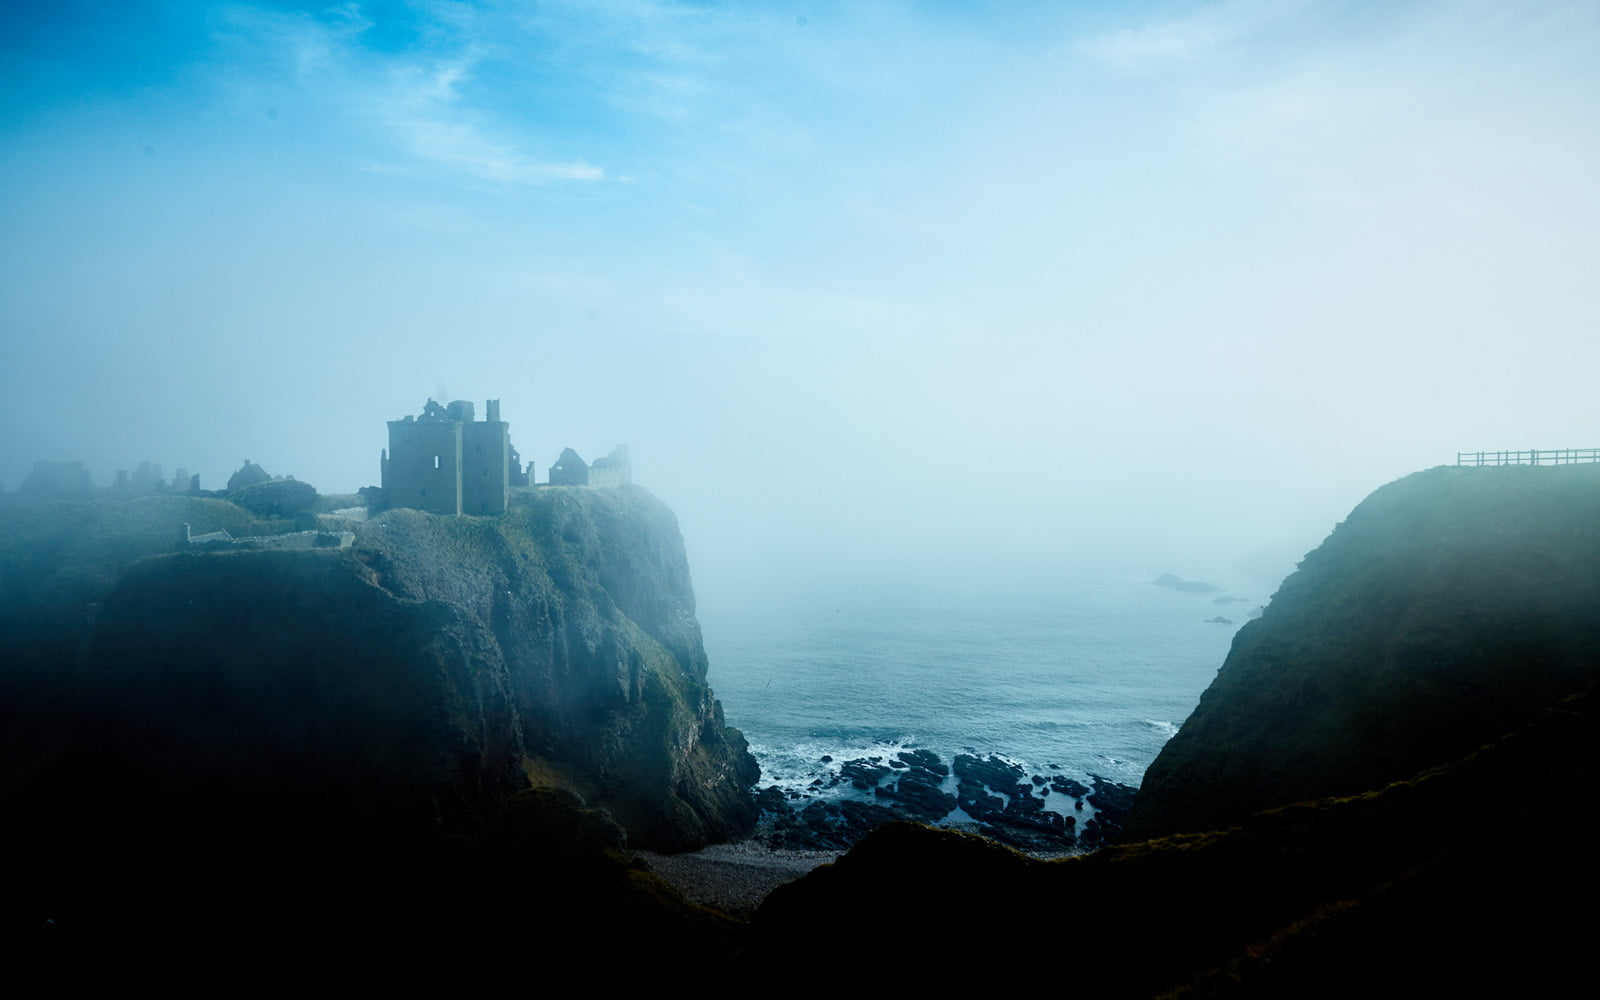 Derelict castle in Scotland with sea mist - UK Photographer is Faceiro//Chris Underwood